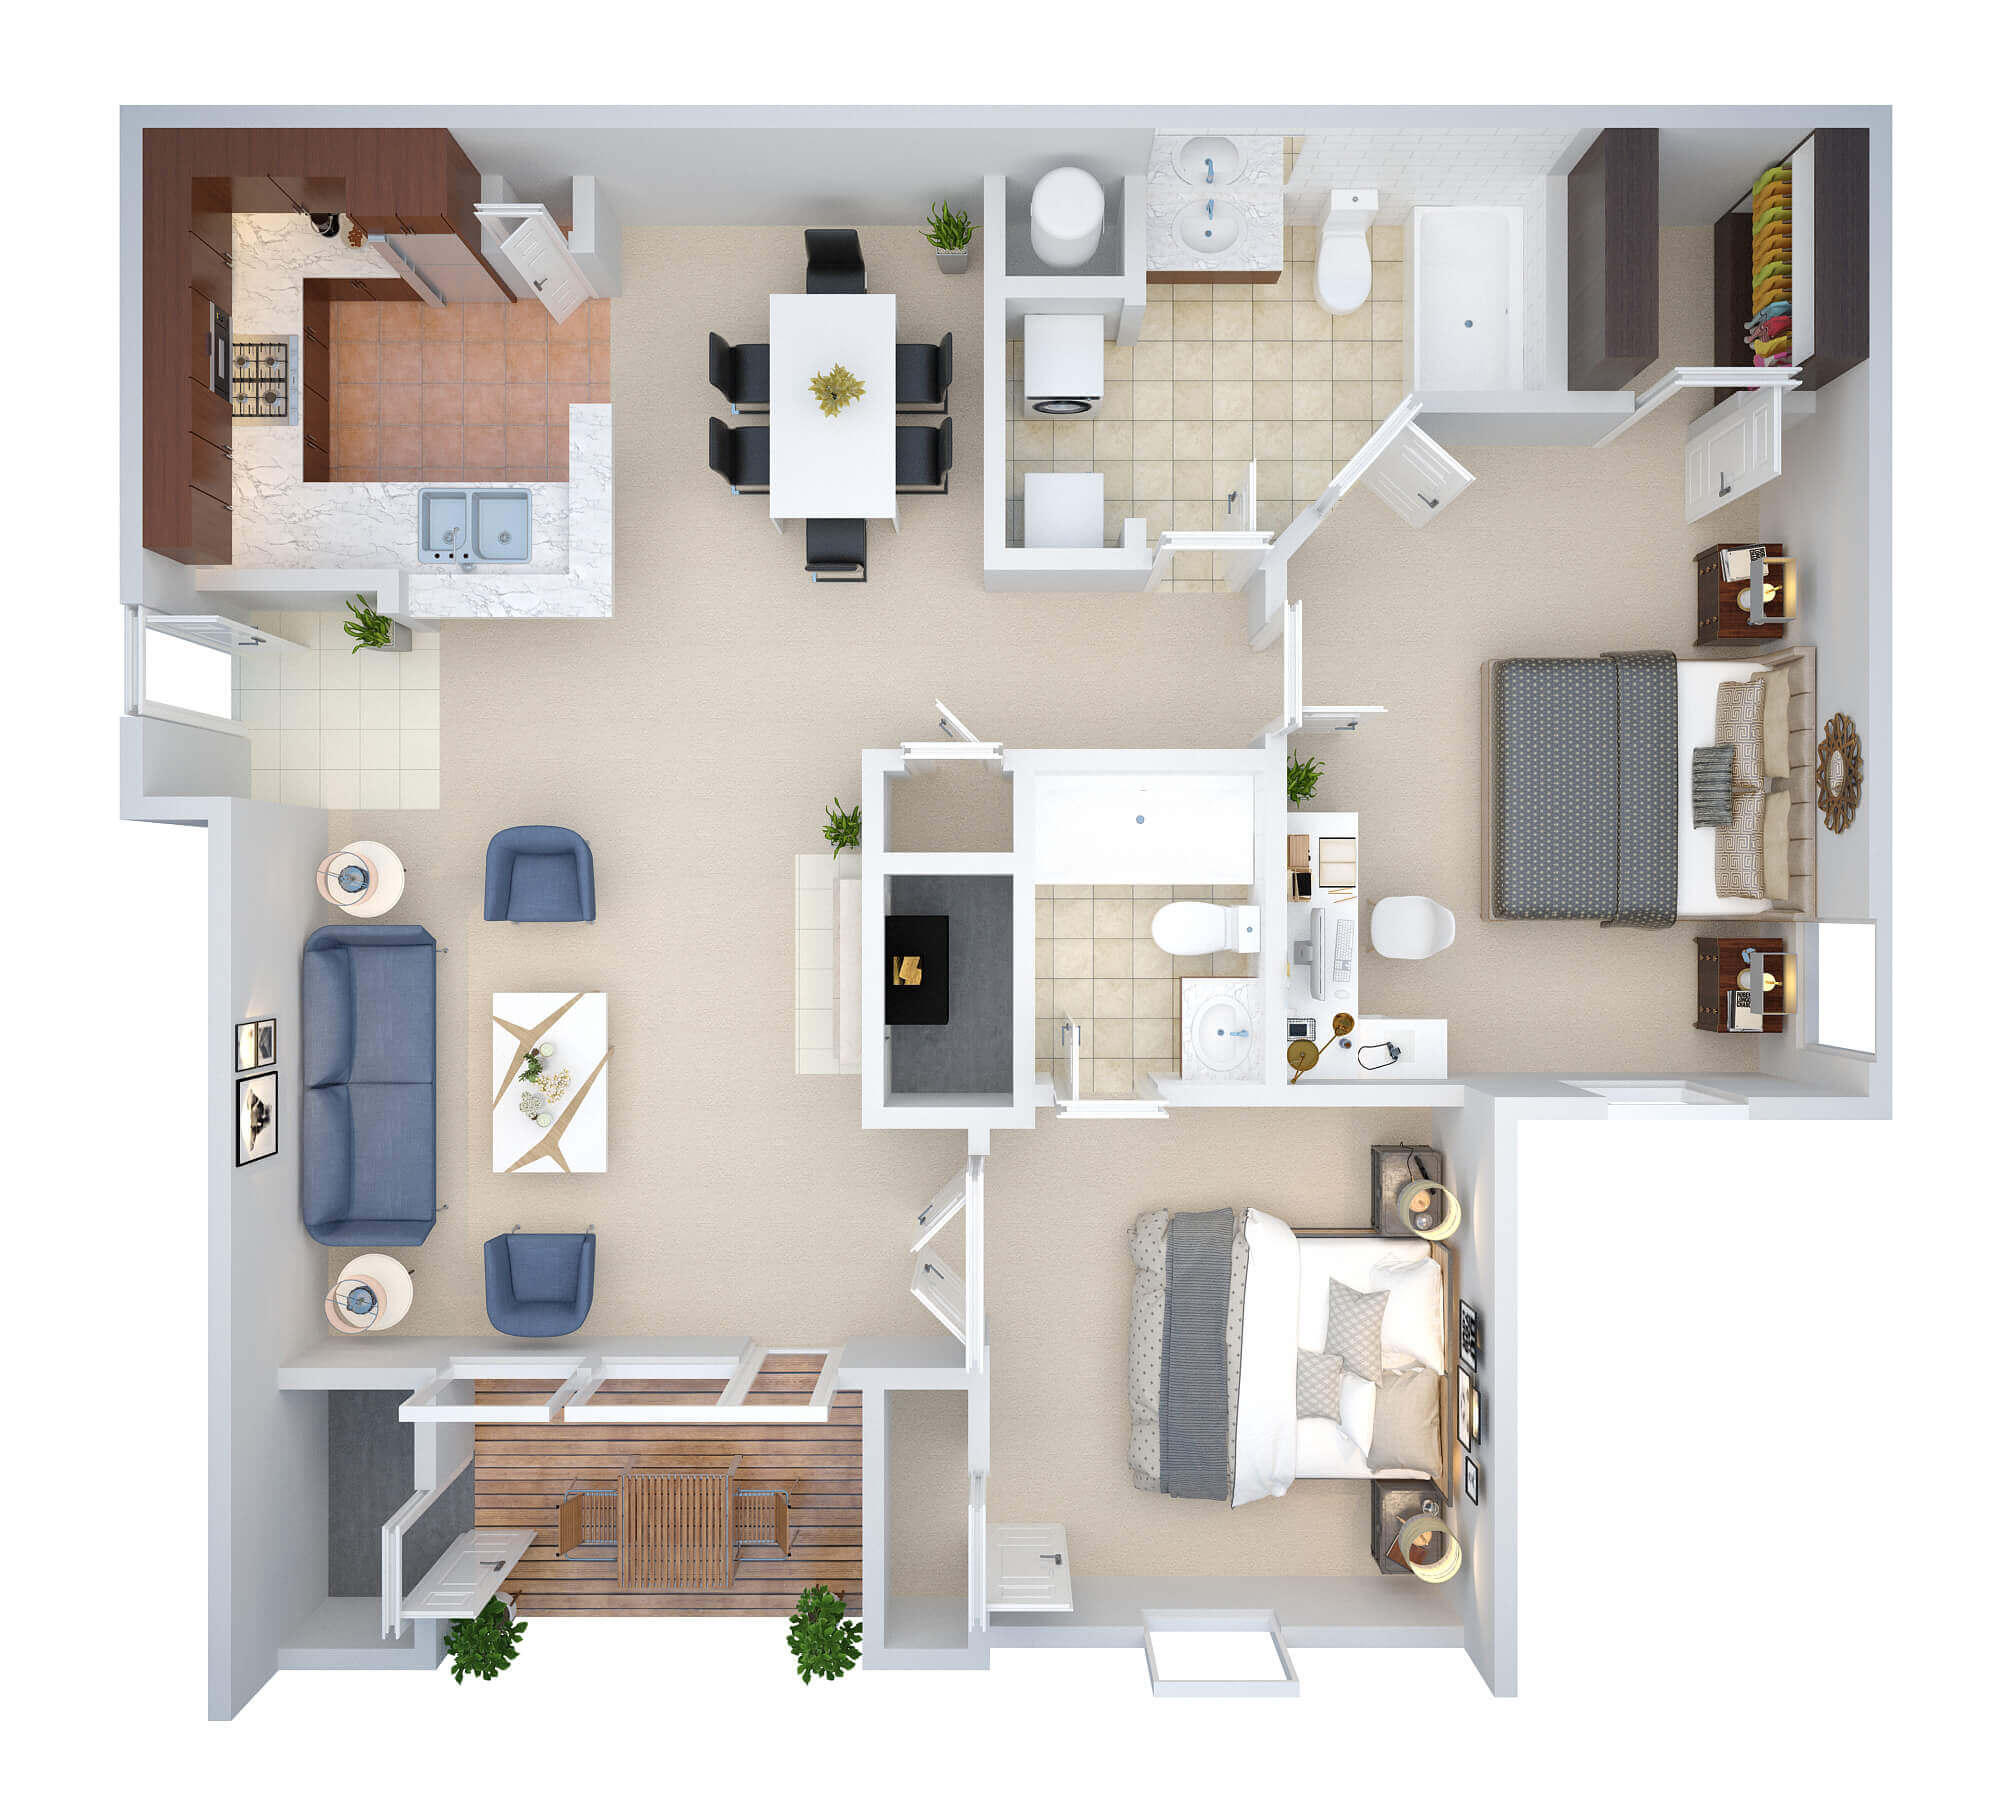 3D Floor Plan Design Sample